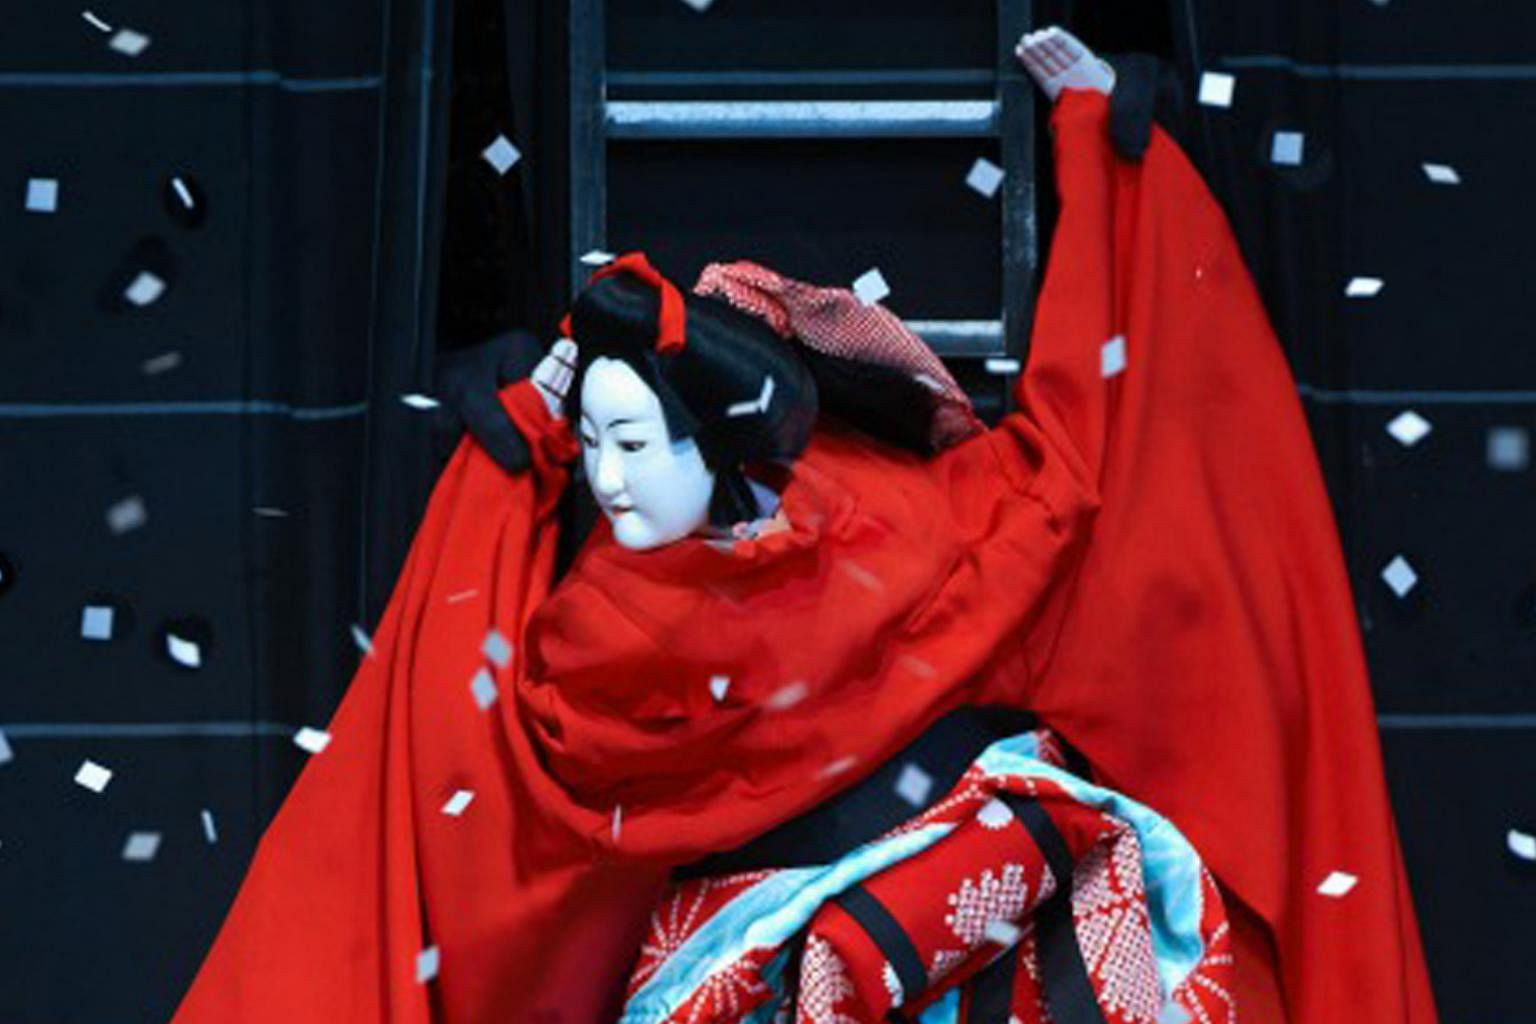 Japanese Puppets Take Centre Stage In Bunraku Performance Arts News Top Stories The Straits Times